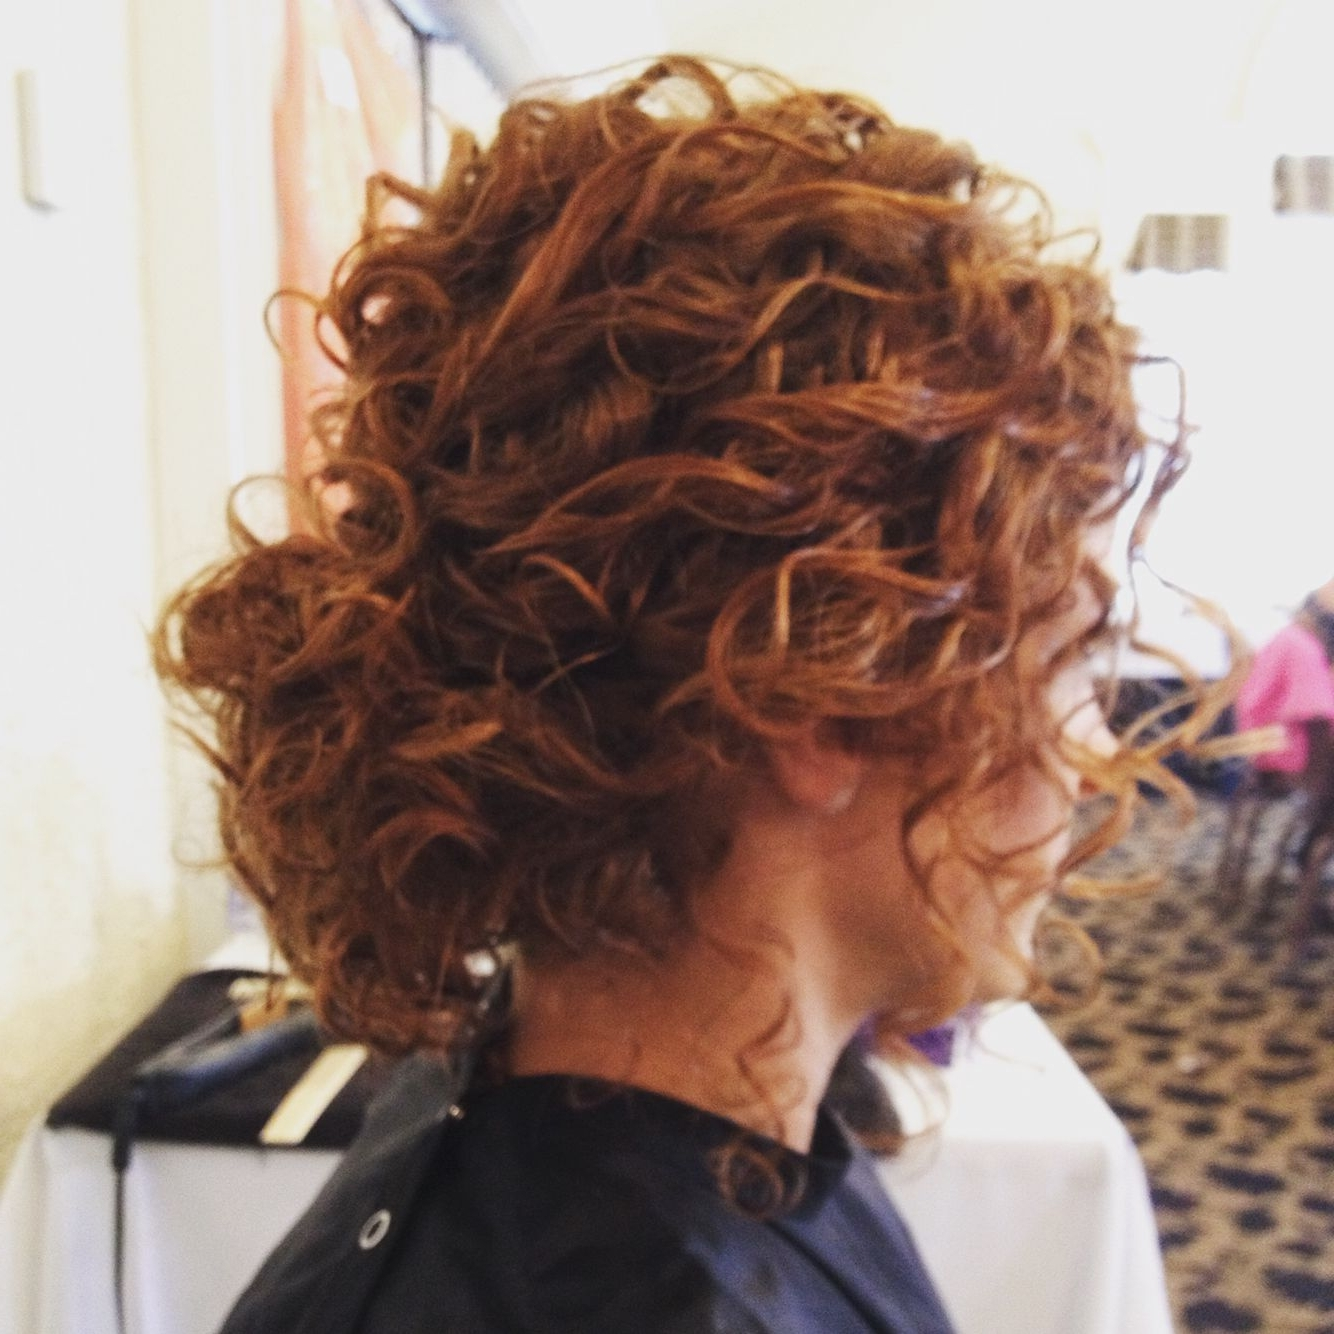 Naturally Curly Hair Low Bun Updo | Hair | Pinterest | Low Bun Updo Throughout Updo Naturally Curly Hairstyles (View 4 of 15)